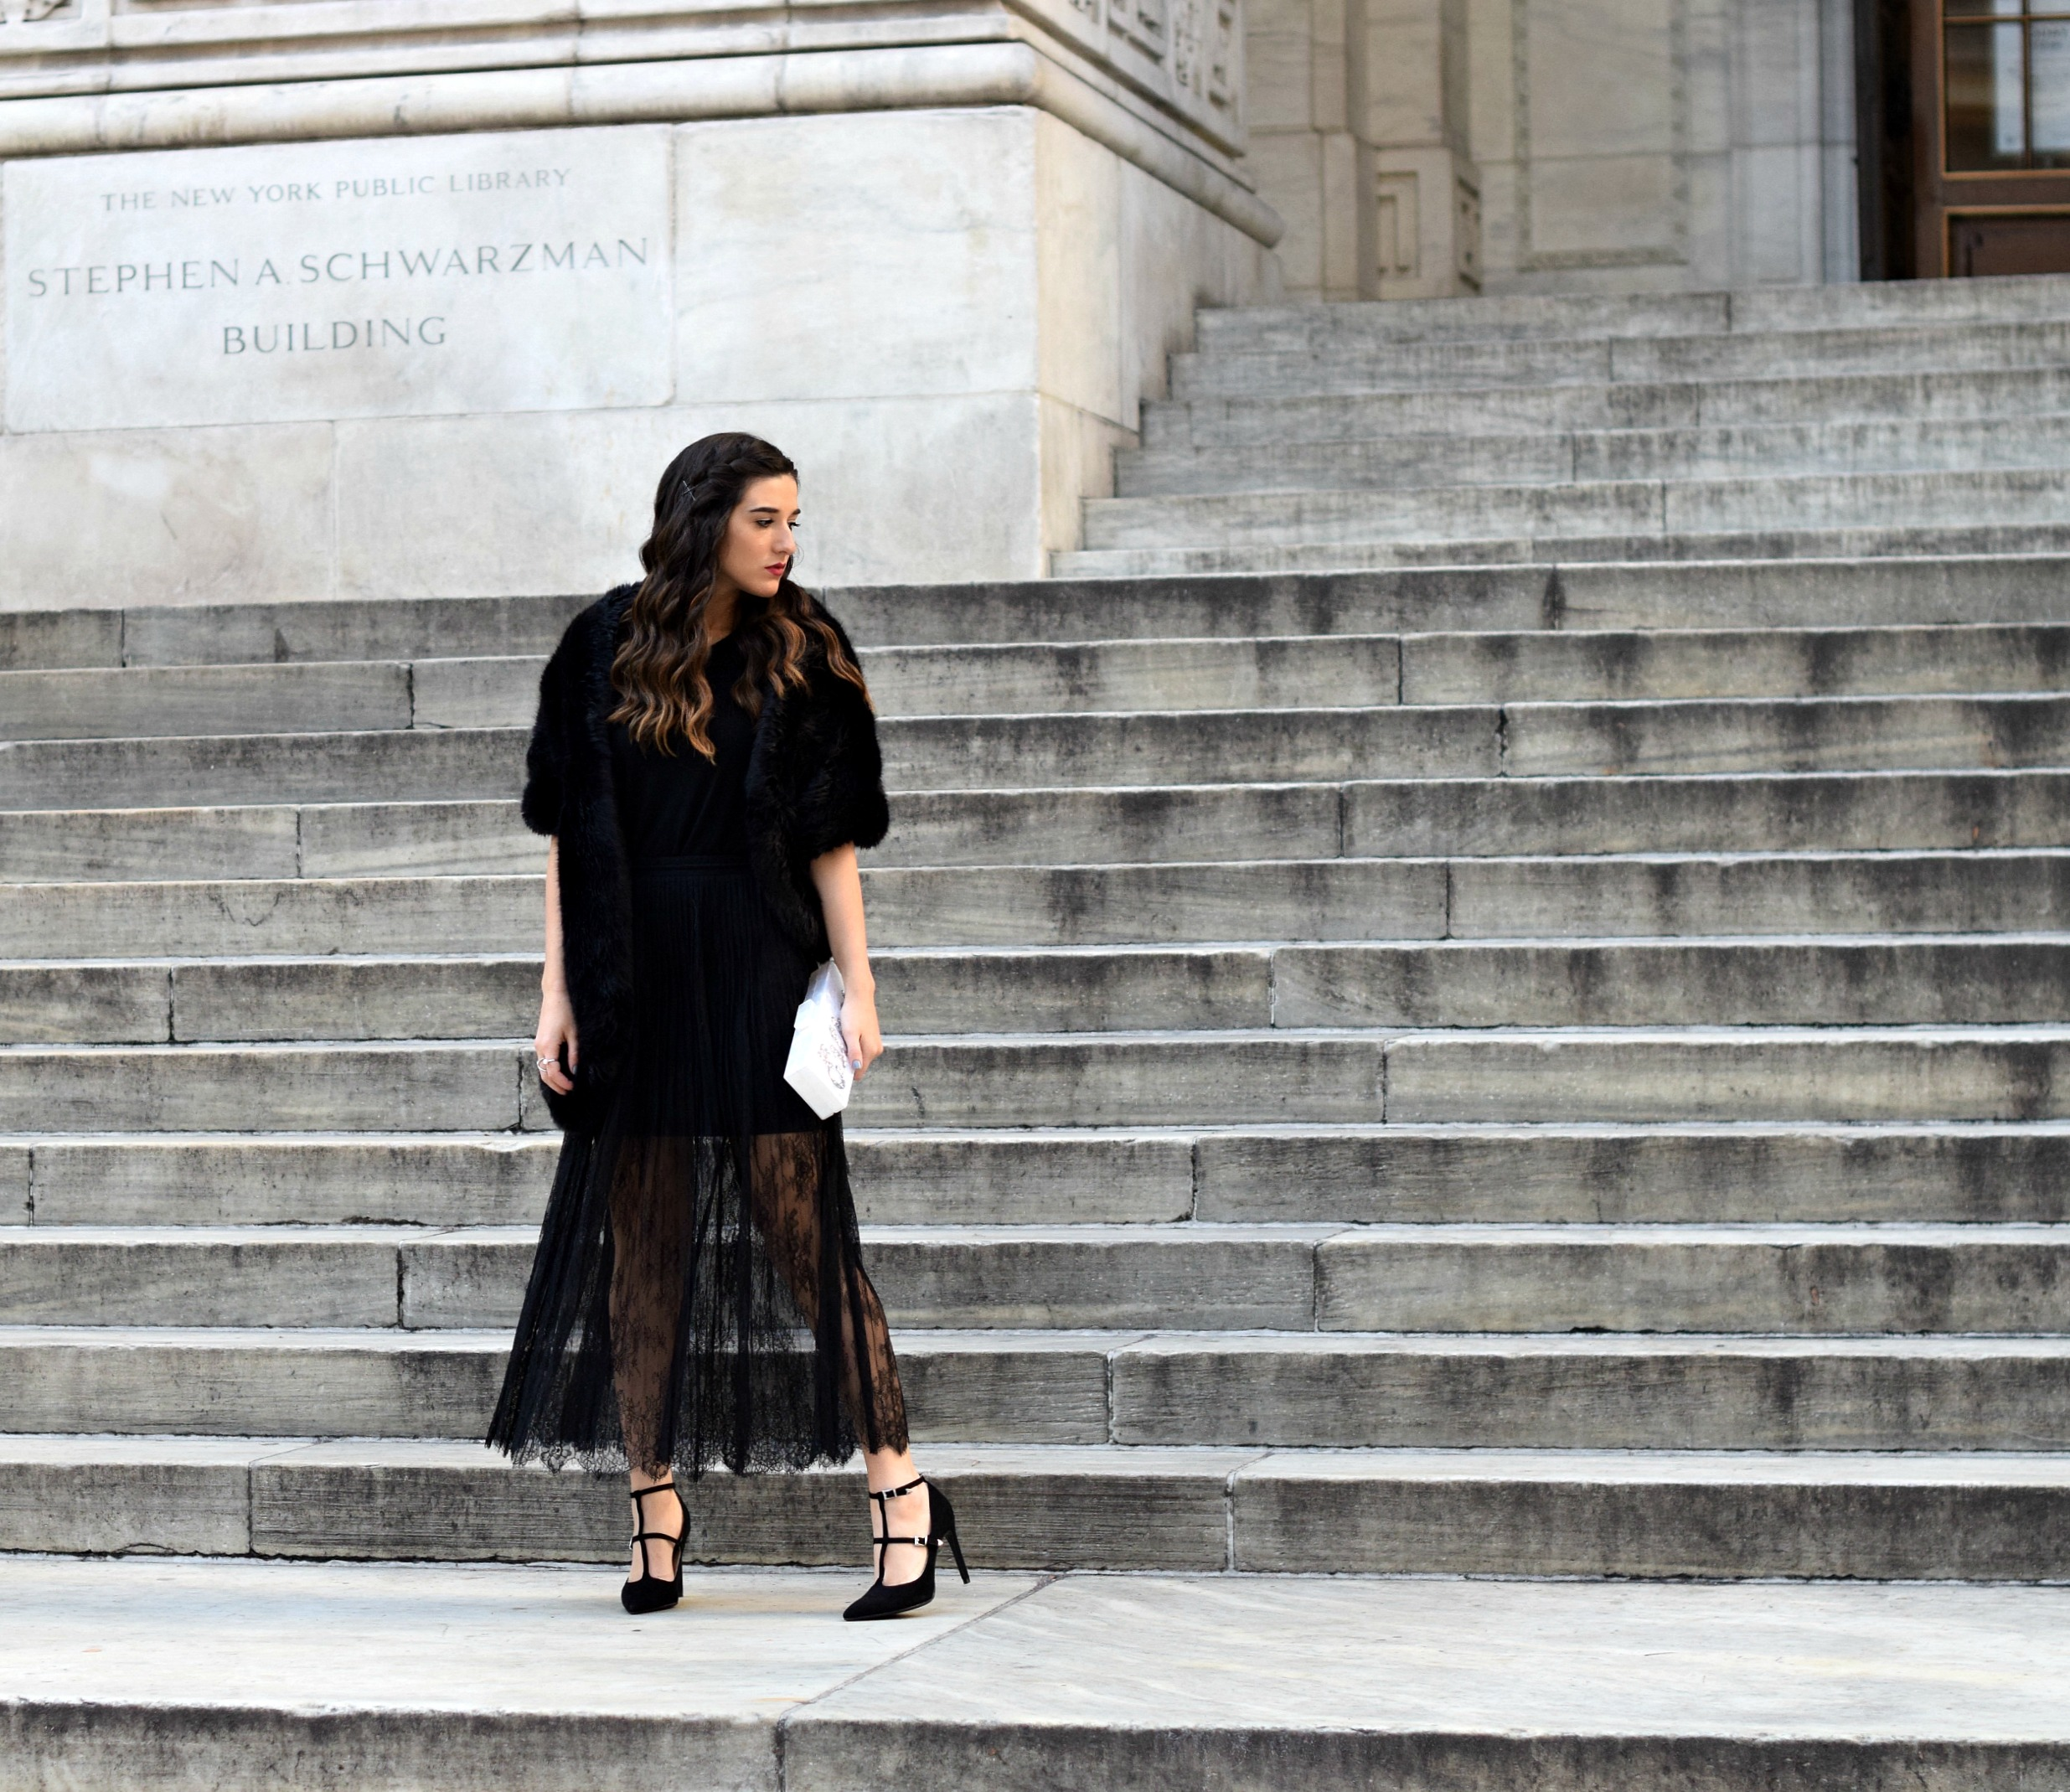 4551a64dc8 All Black Lace Skirt Fur Stole Louboutins & Love Fashion Blog Esther Santer  NYC Street Style